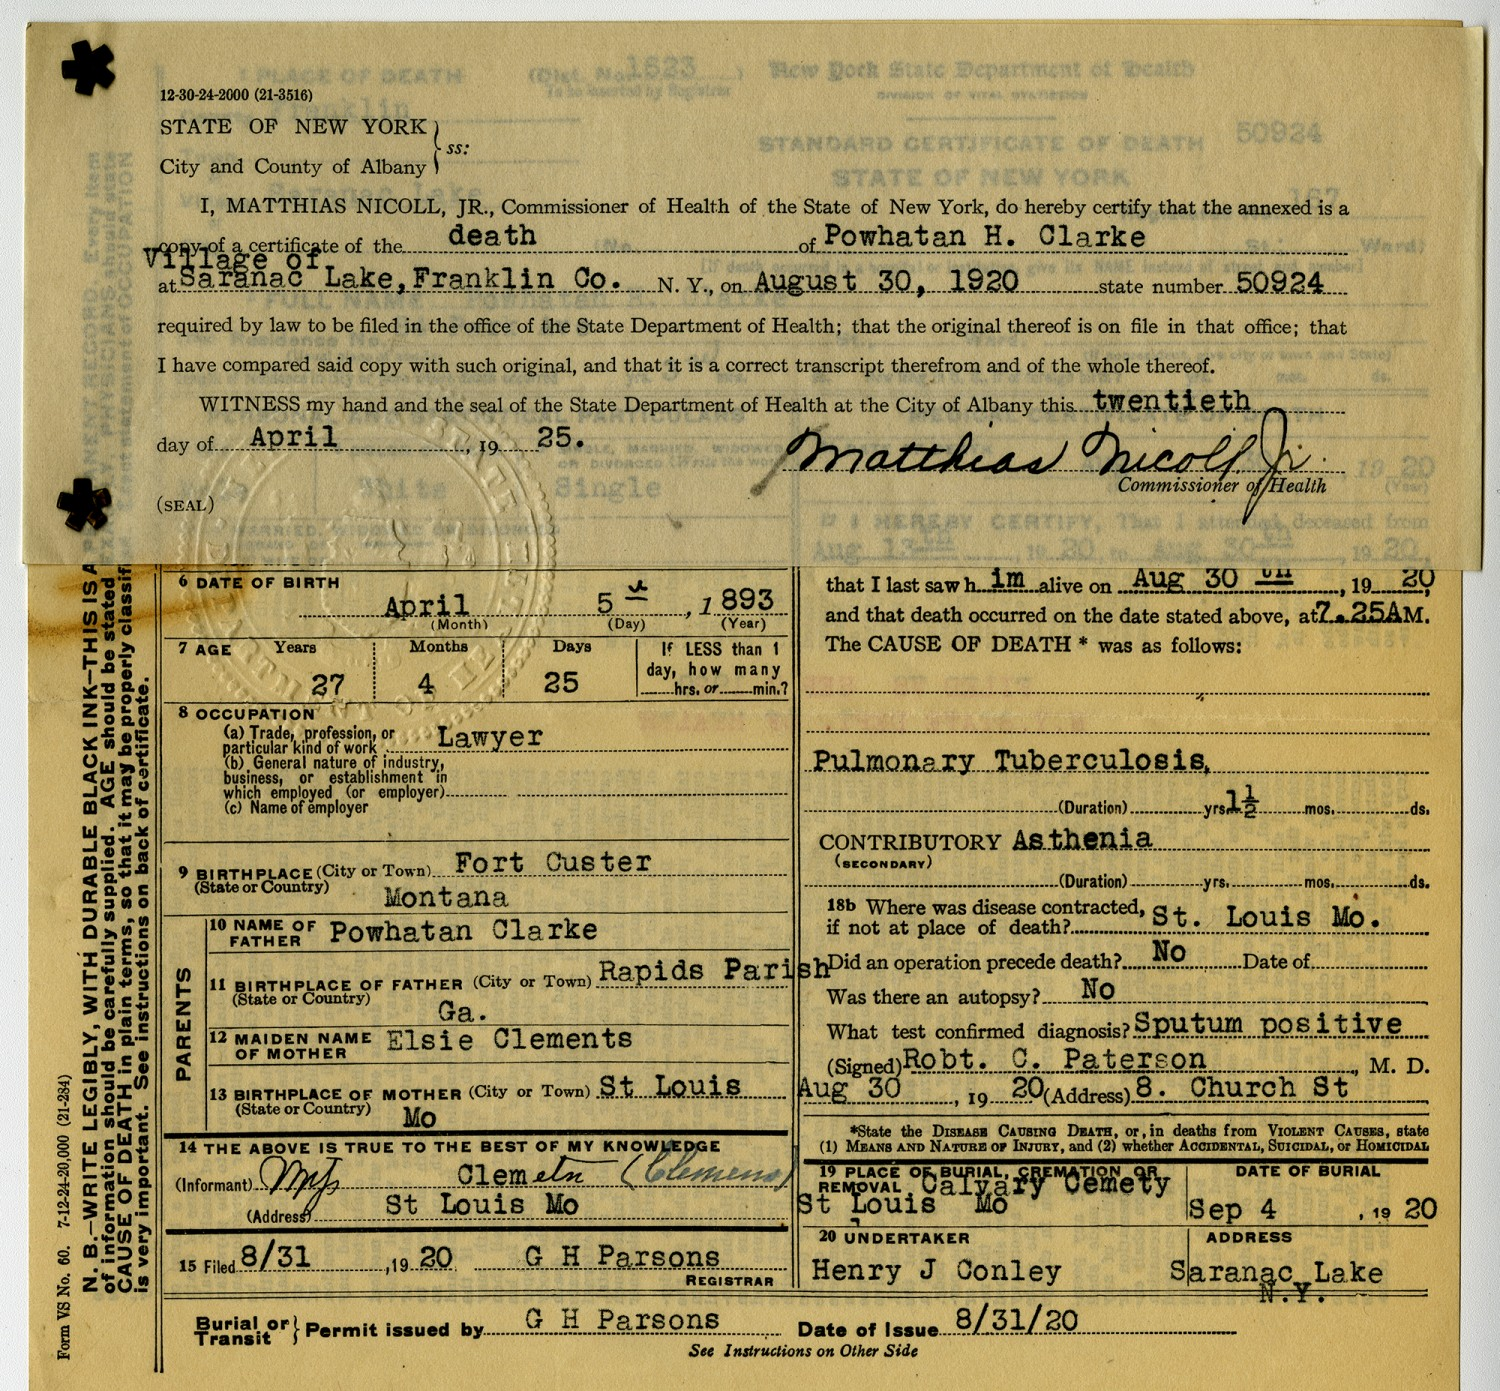 Clarke powhatan papers collections missouri over there transcript 1betcityfo Image collections